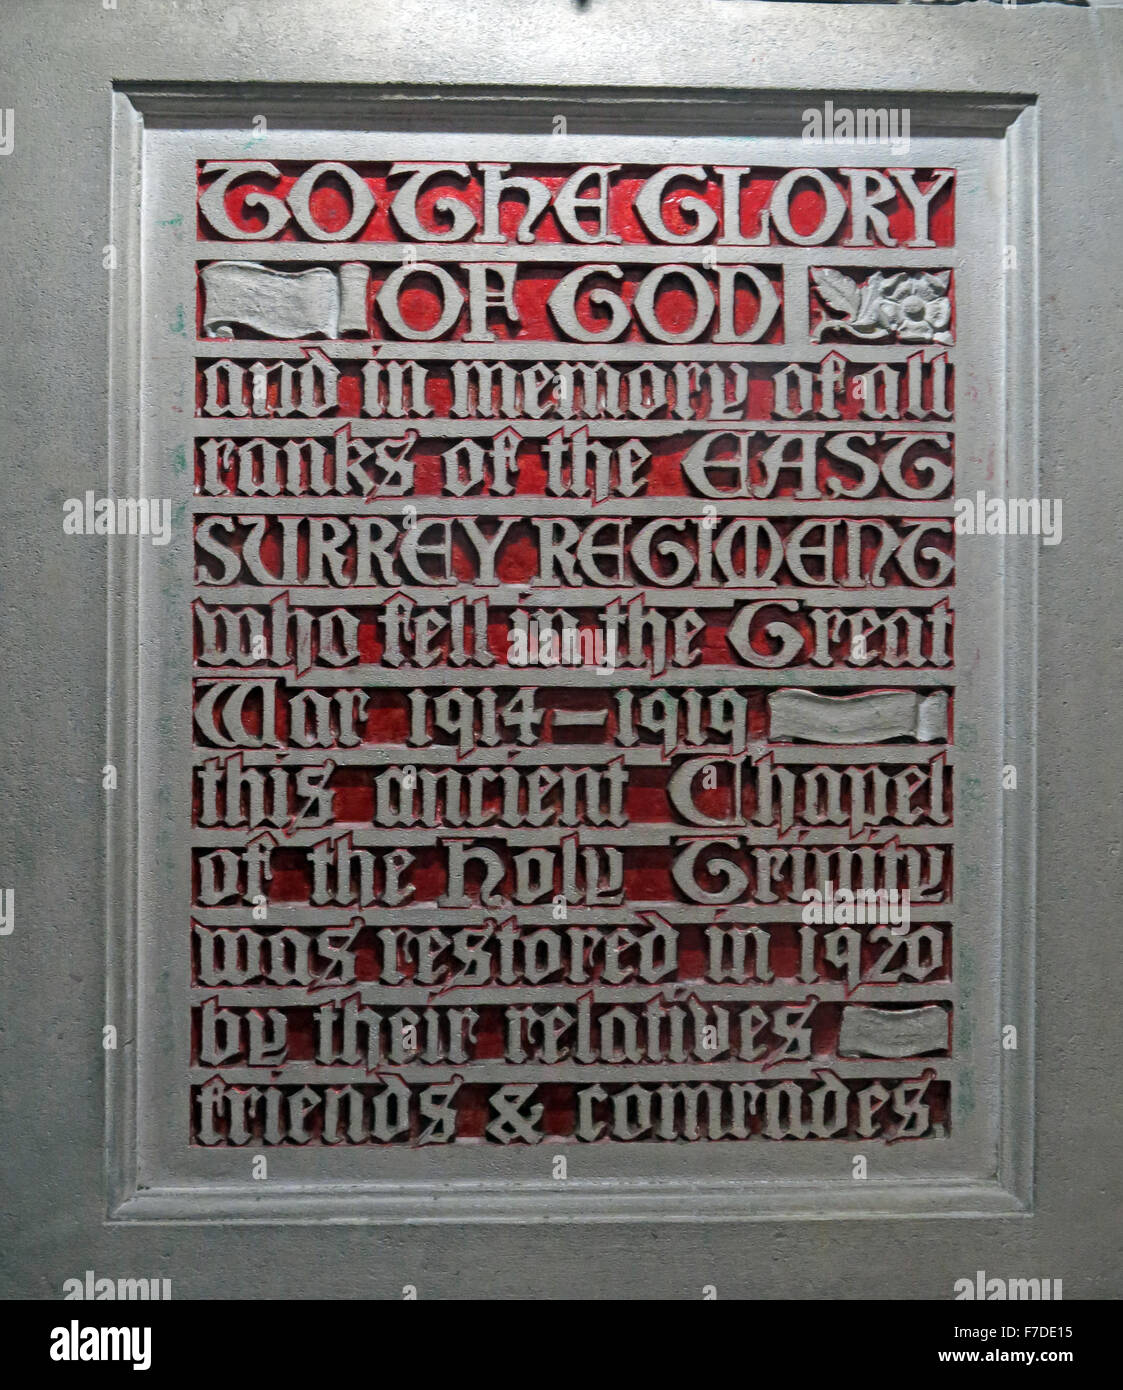 All Saints Church Kingston, To The Glory of God, and in the memory of all ranks of the East Surrey Regiment Stock Photo